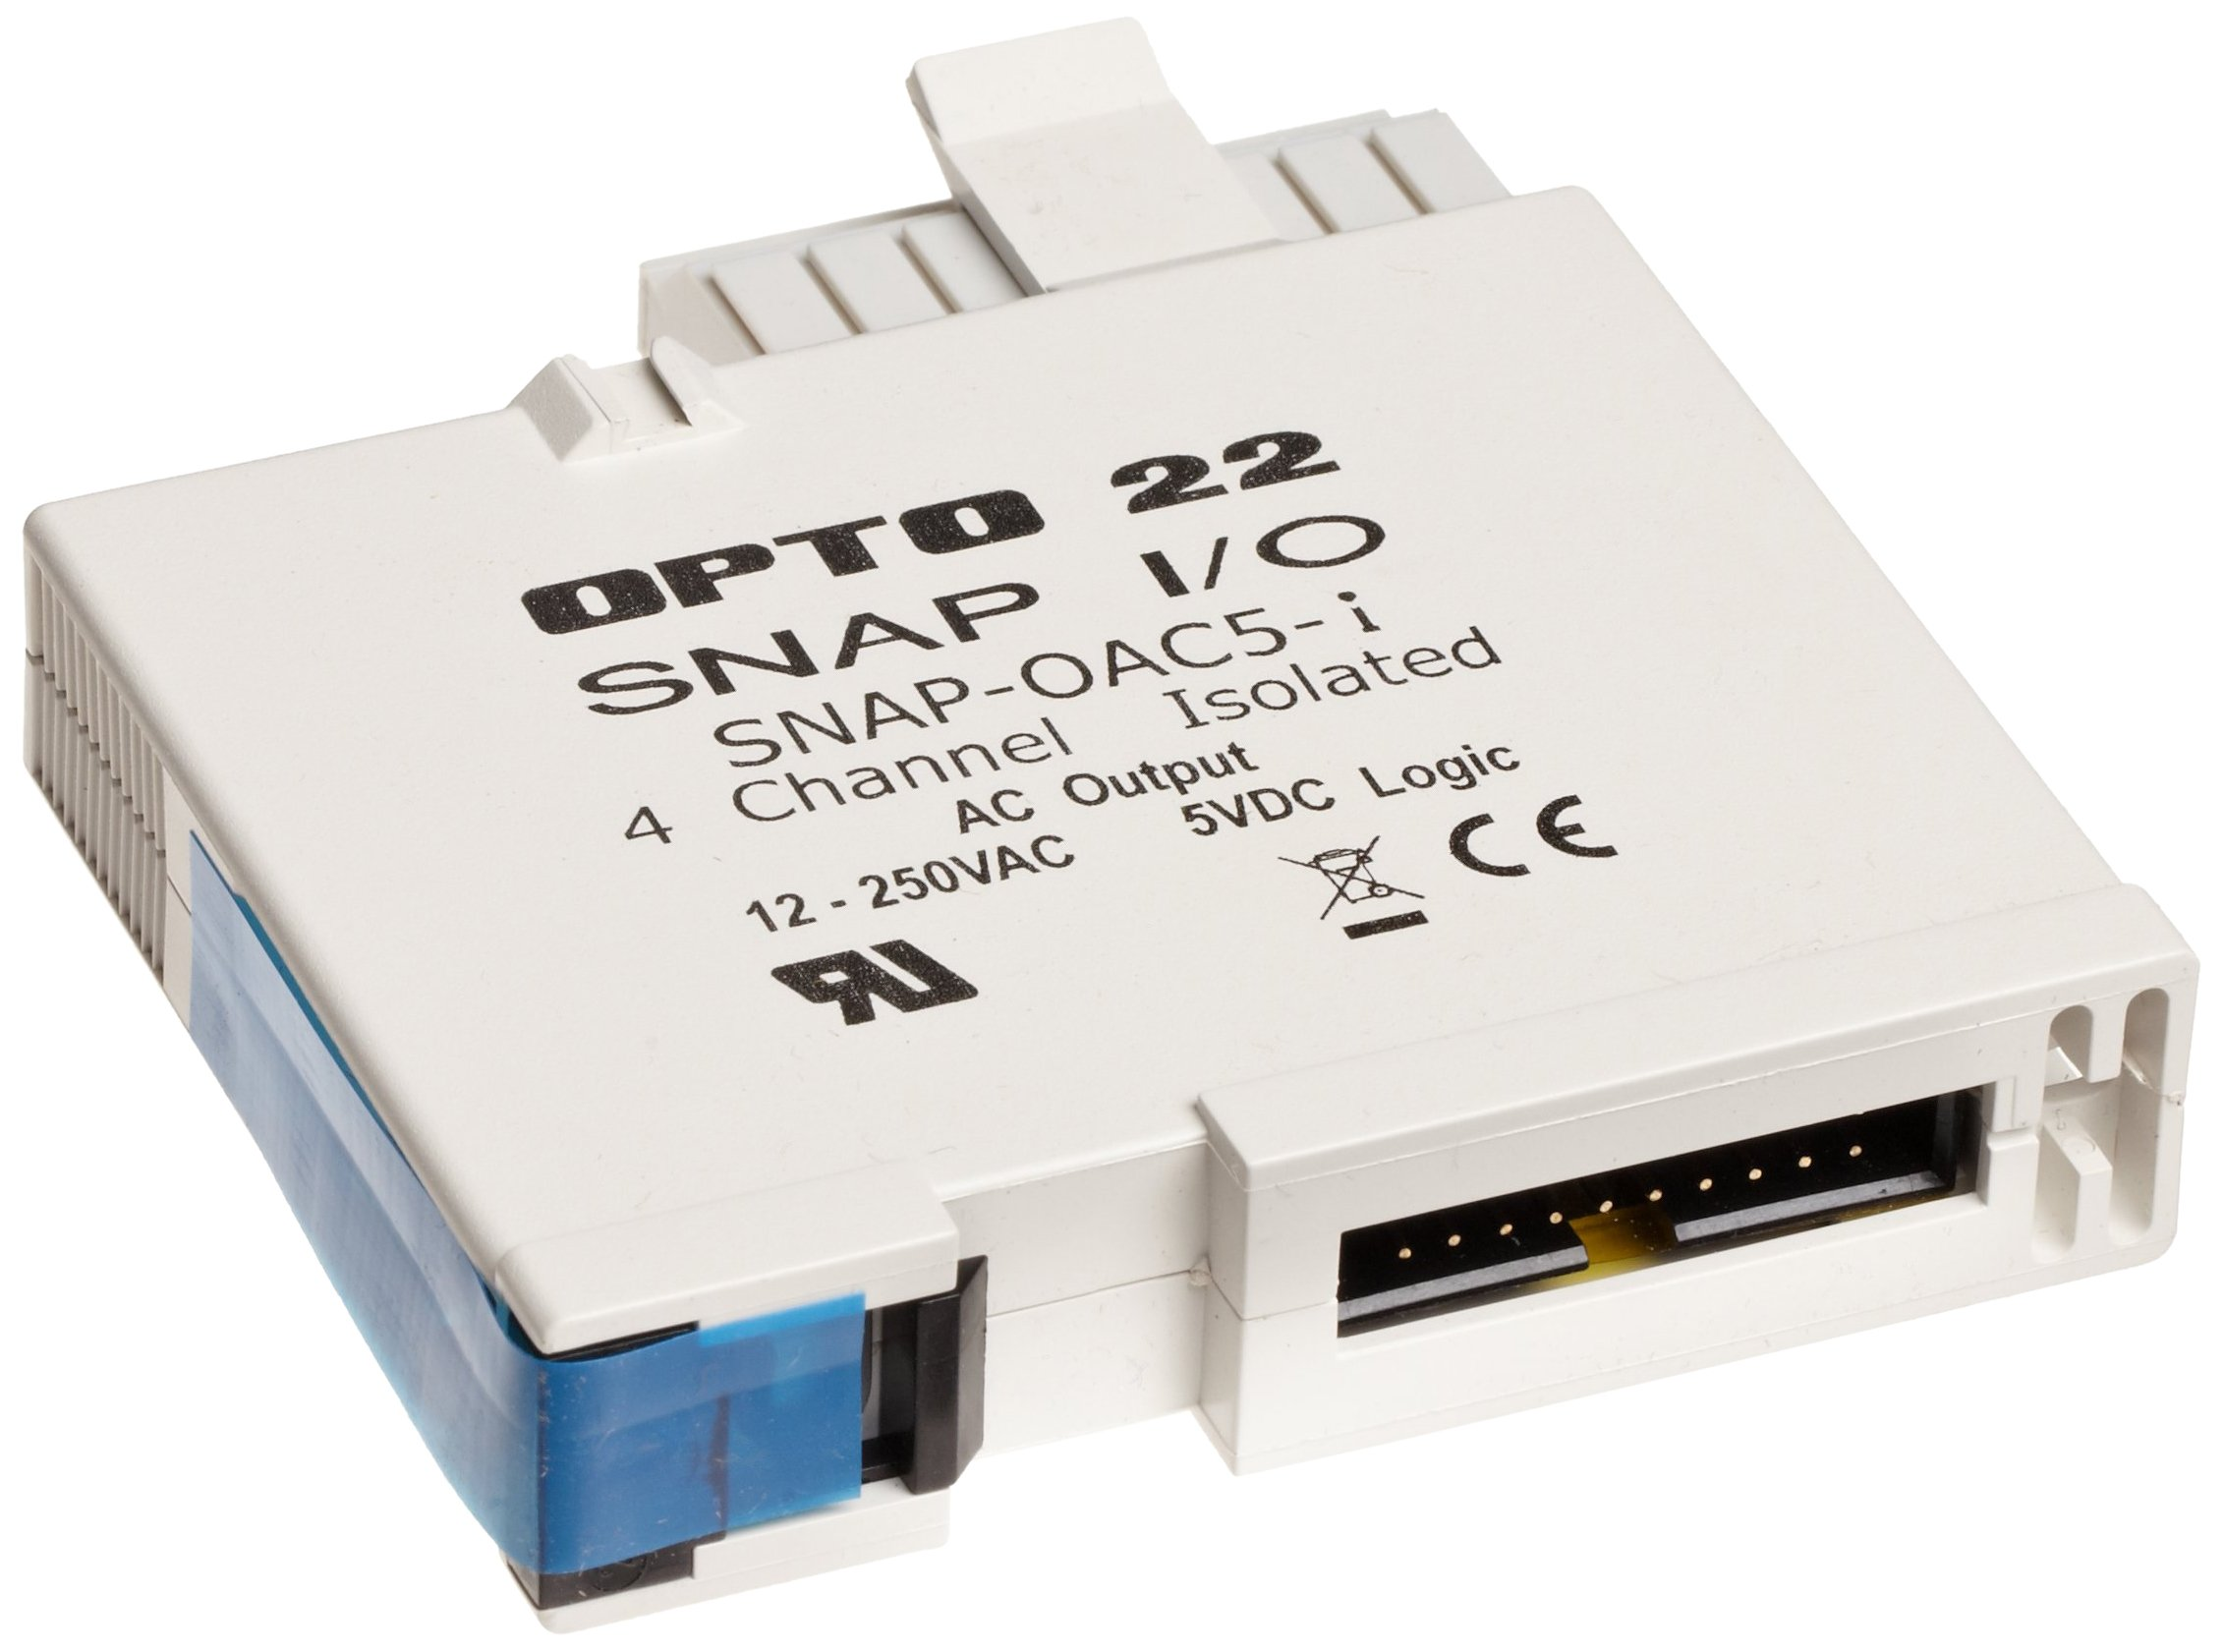 Opto 22 SNAP-OAC5-I - SNAP Digital (Discrete) Output Module, 4 Isolated Channels, 12-250 VAC